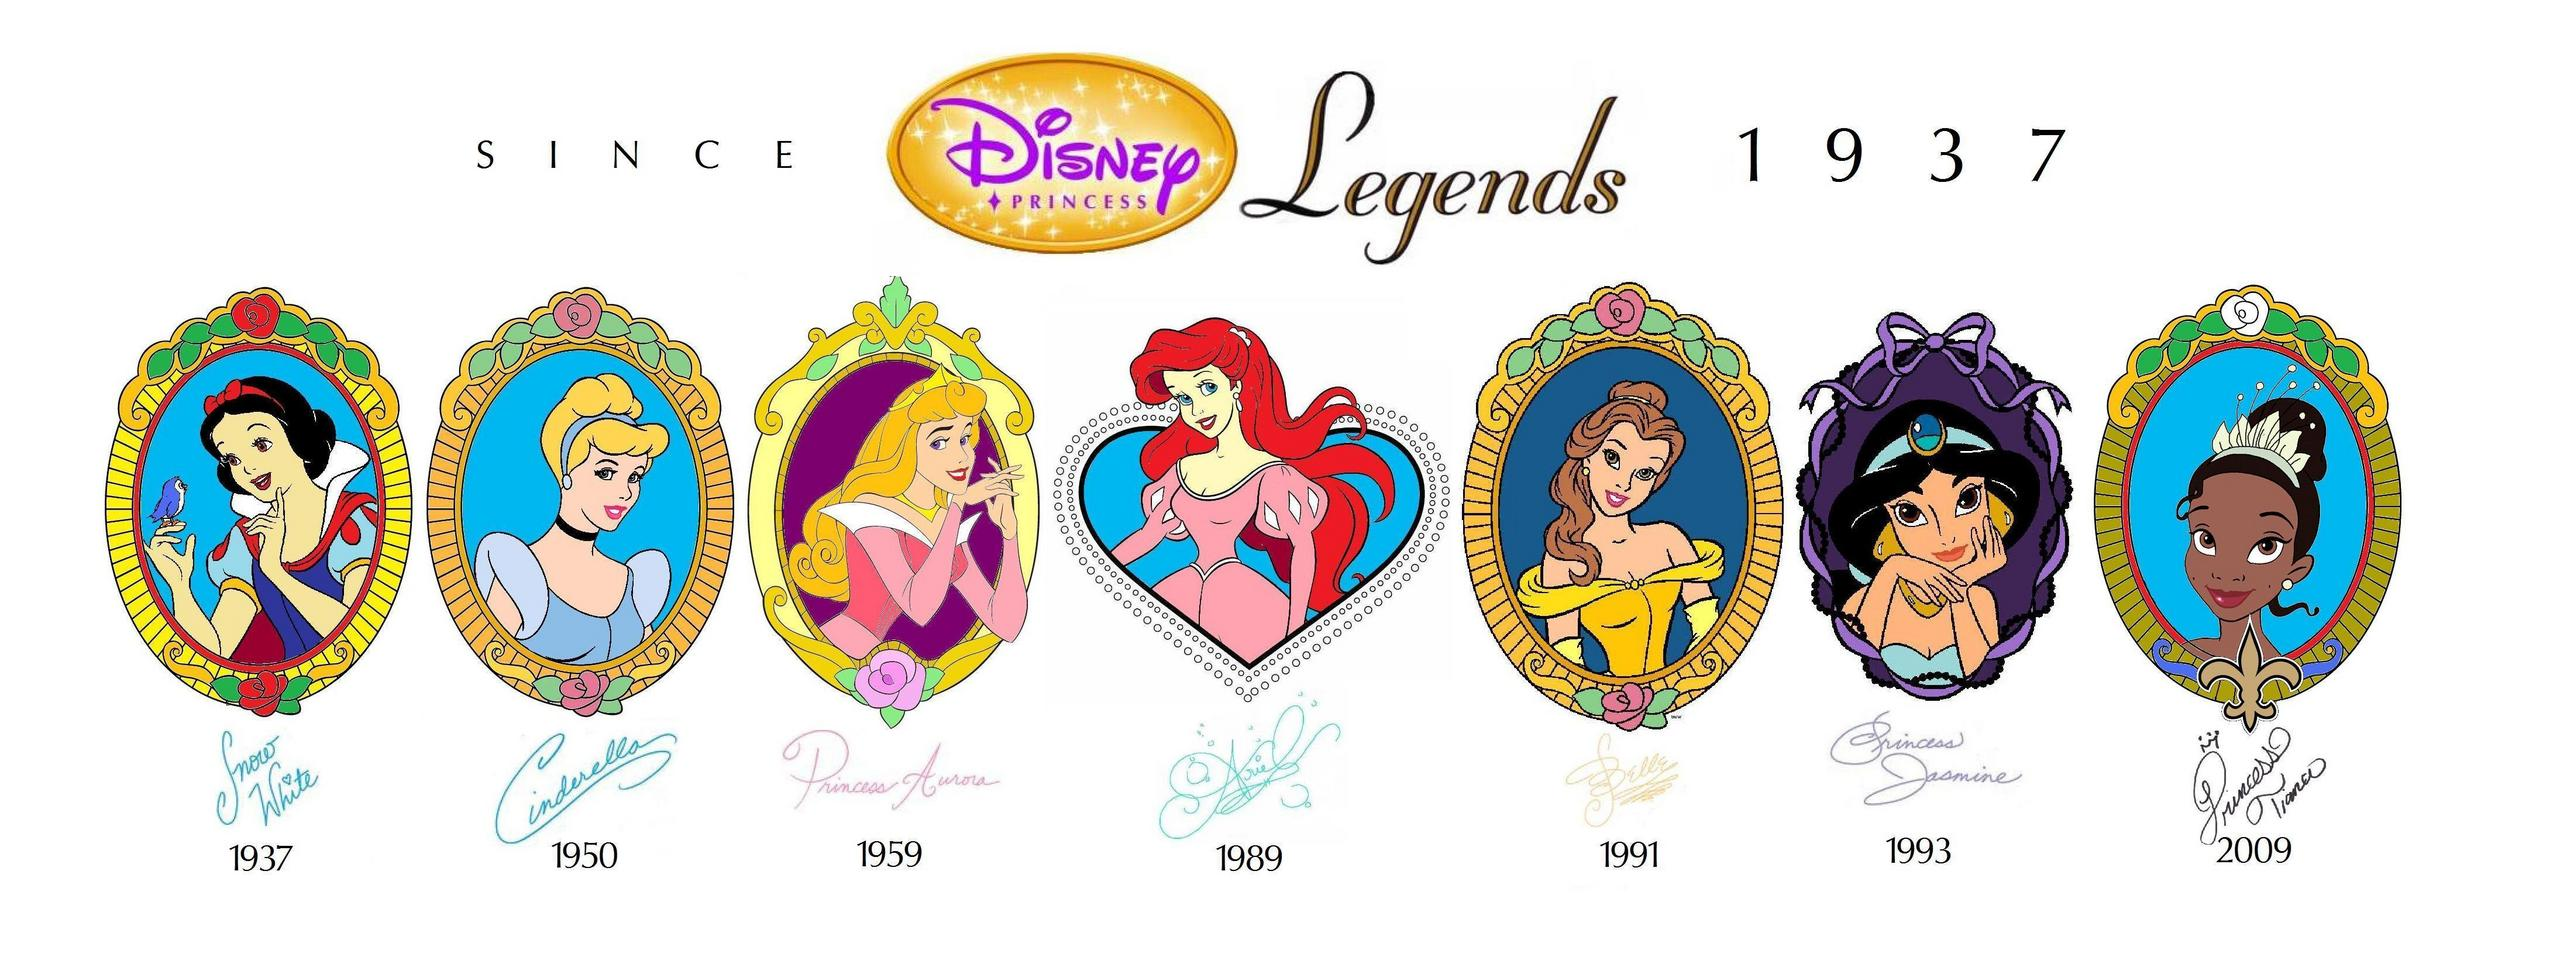 Disney Princess Friendship Quotes Disney Princess - Legends